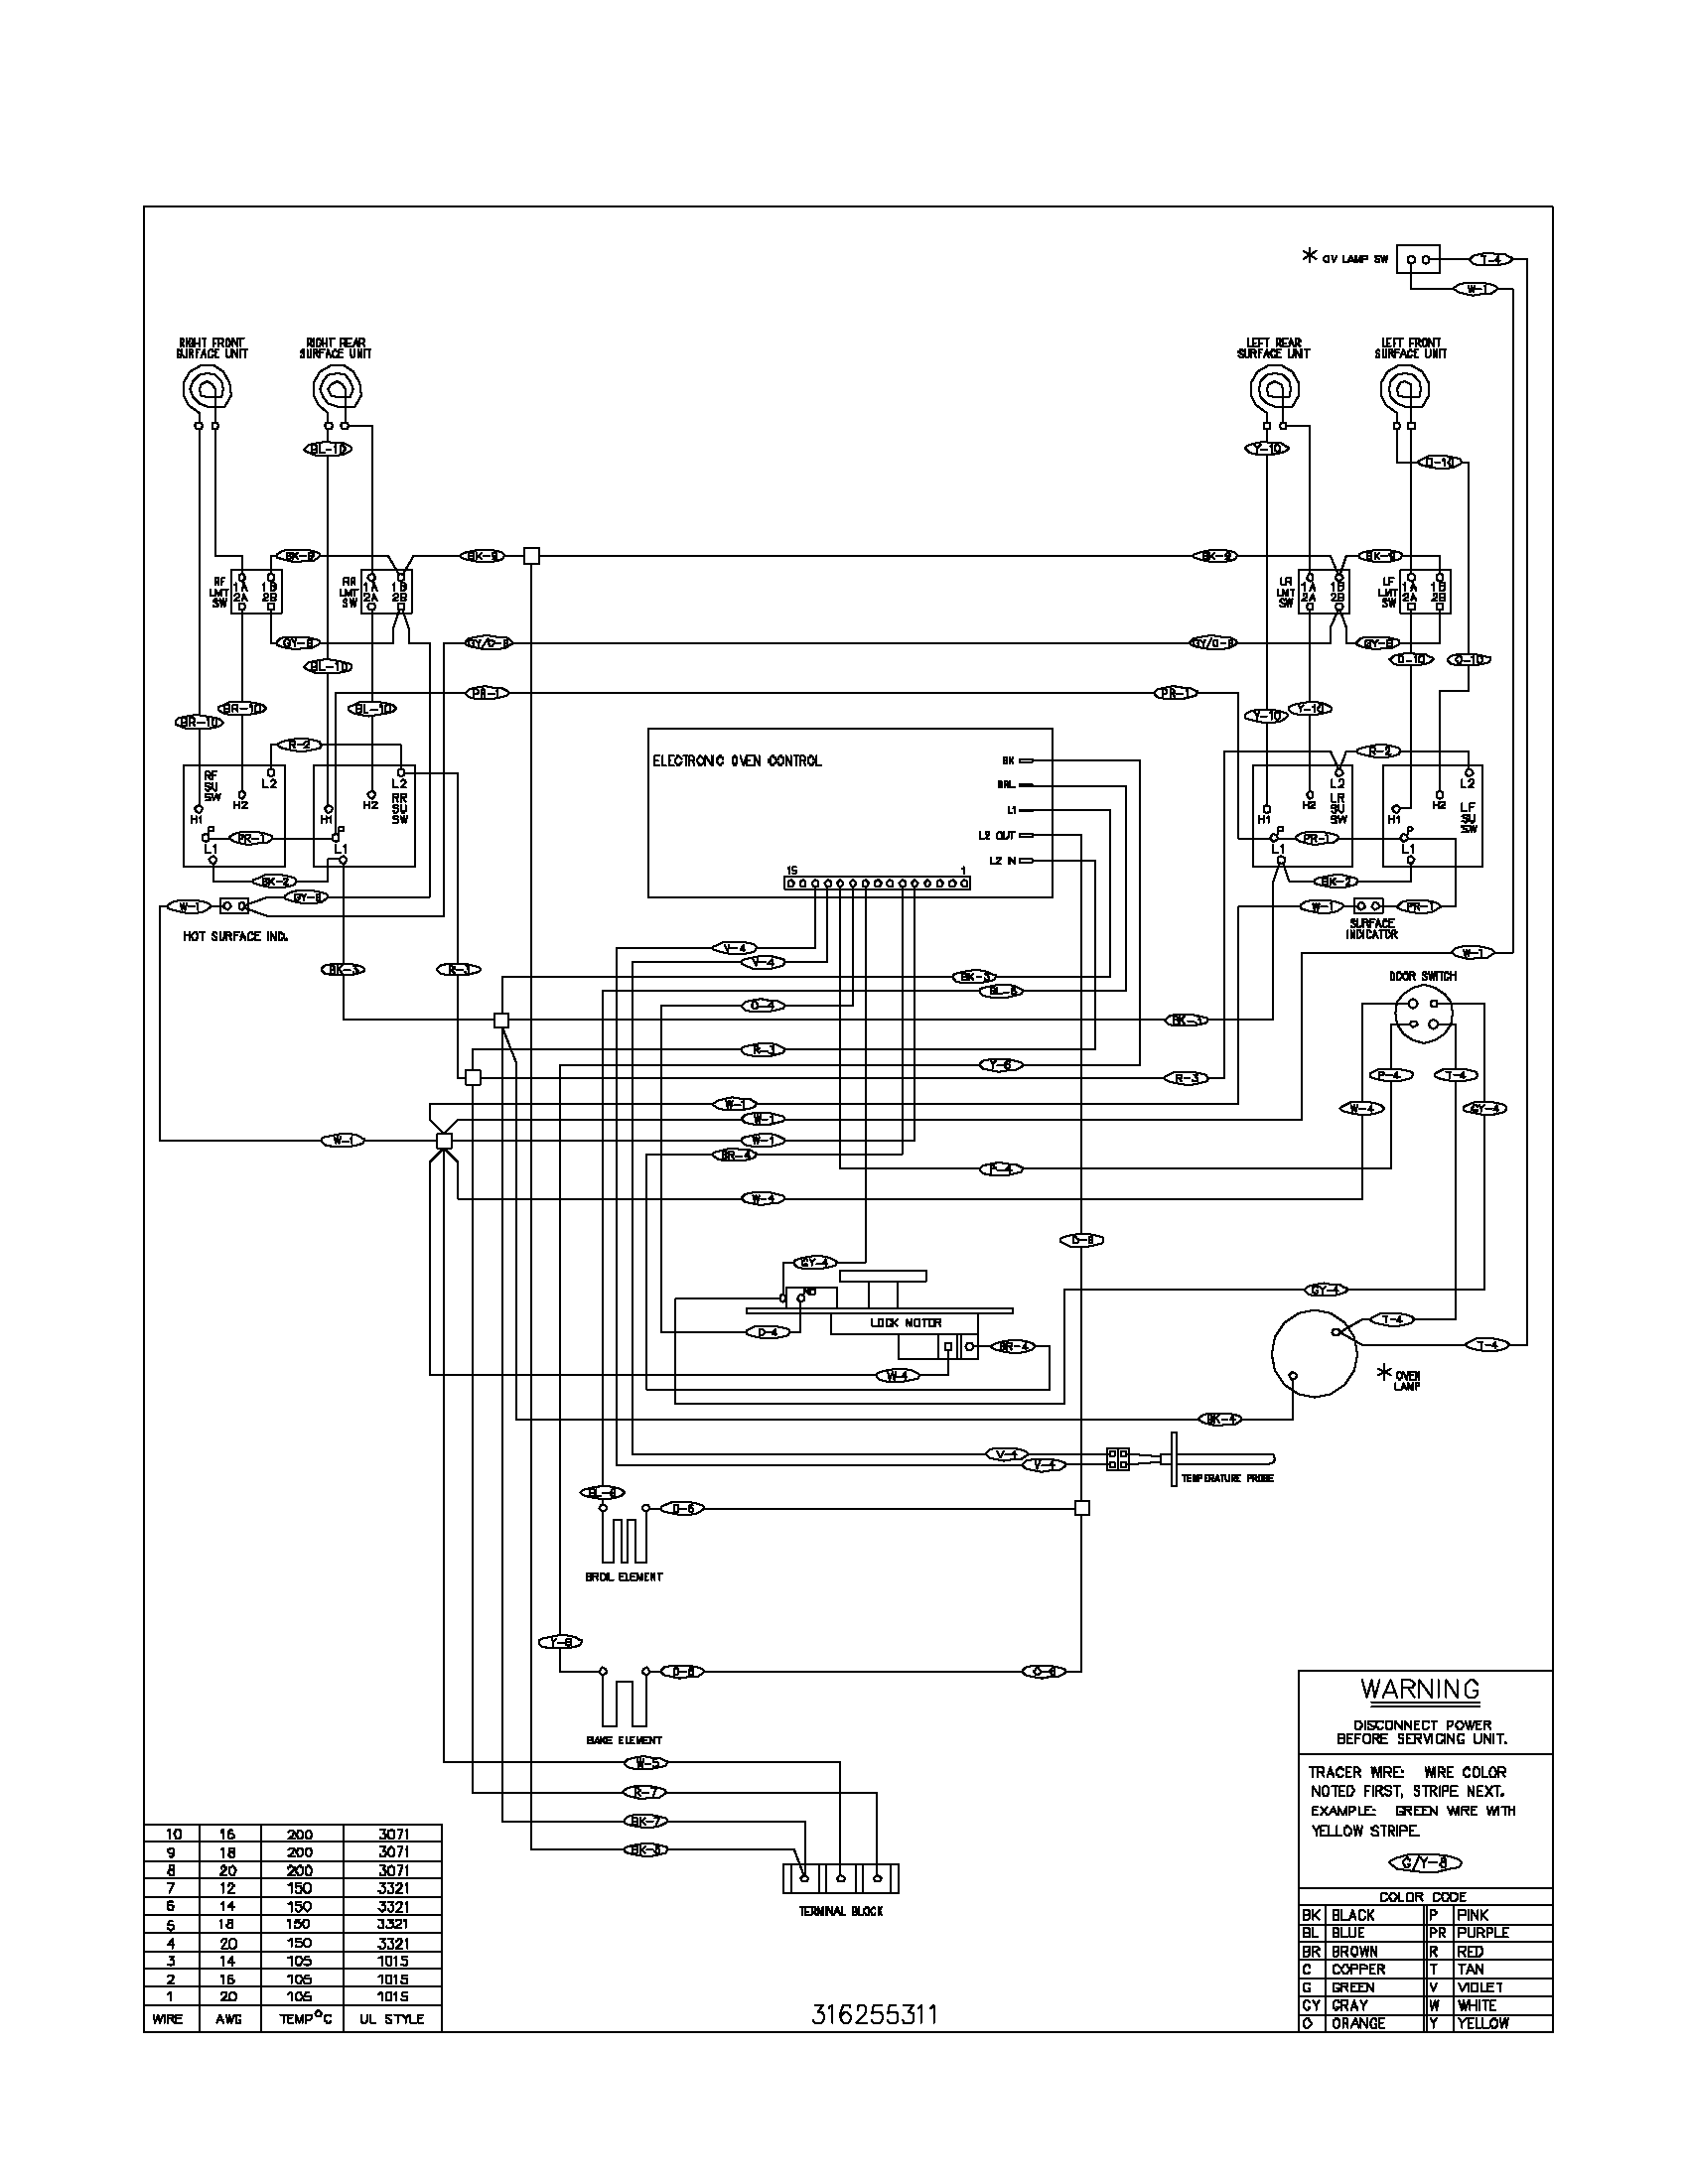 general electric range wiring diagram frigidaire fef366ccb electric range timer - stove clocks ...